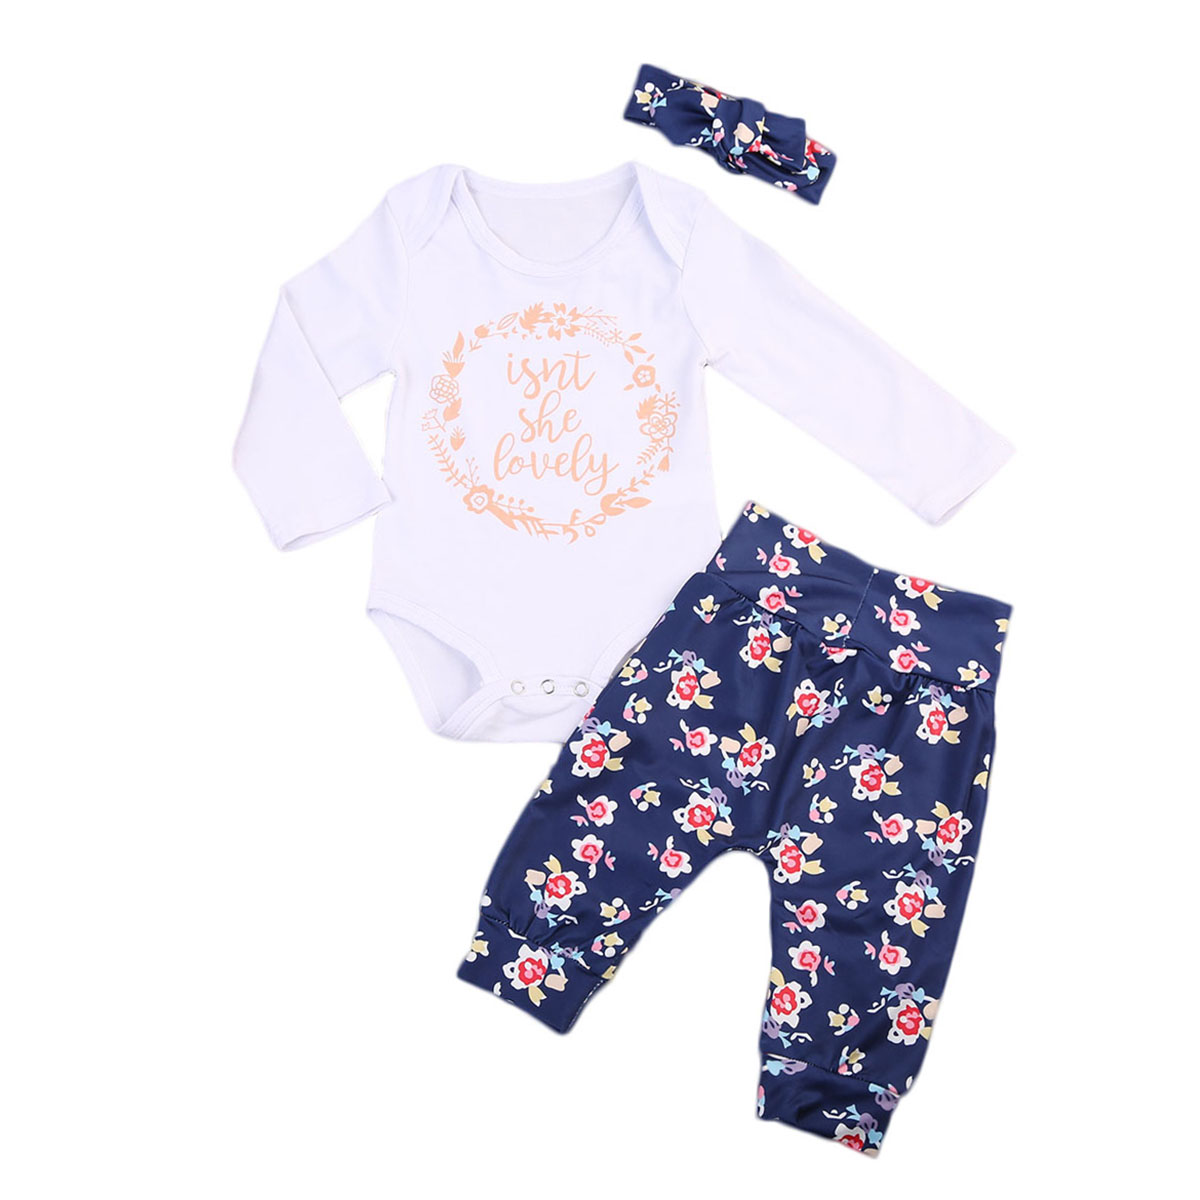 3PCS Newborn Baby Girl Clothes Set Long Sleeve Letter Print Cotton Romper Bodysuit +Floral Long Pant Headband Outfit Bebek Giyim 3pcs newborn baby girl clothes set long sleeve letter print cotton romper bodysuit floral long pant headband outfit bebek giyim